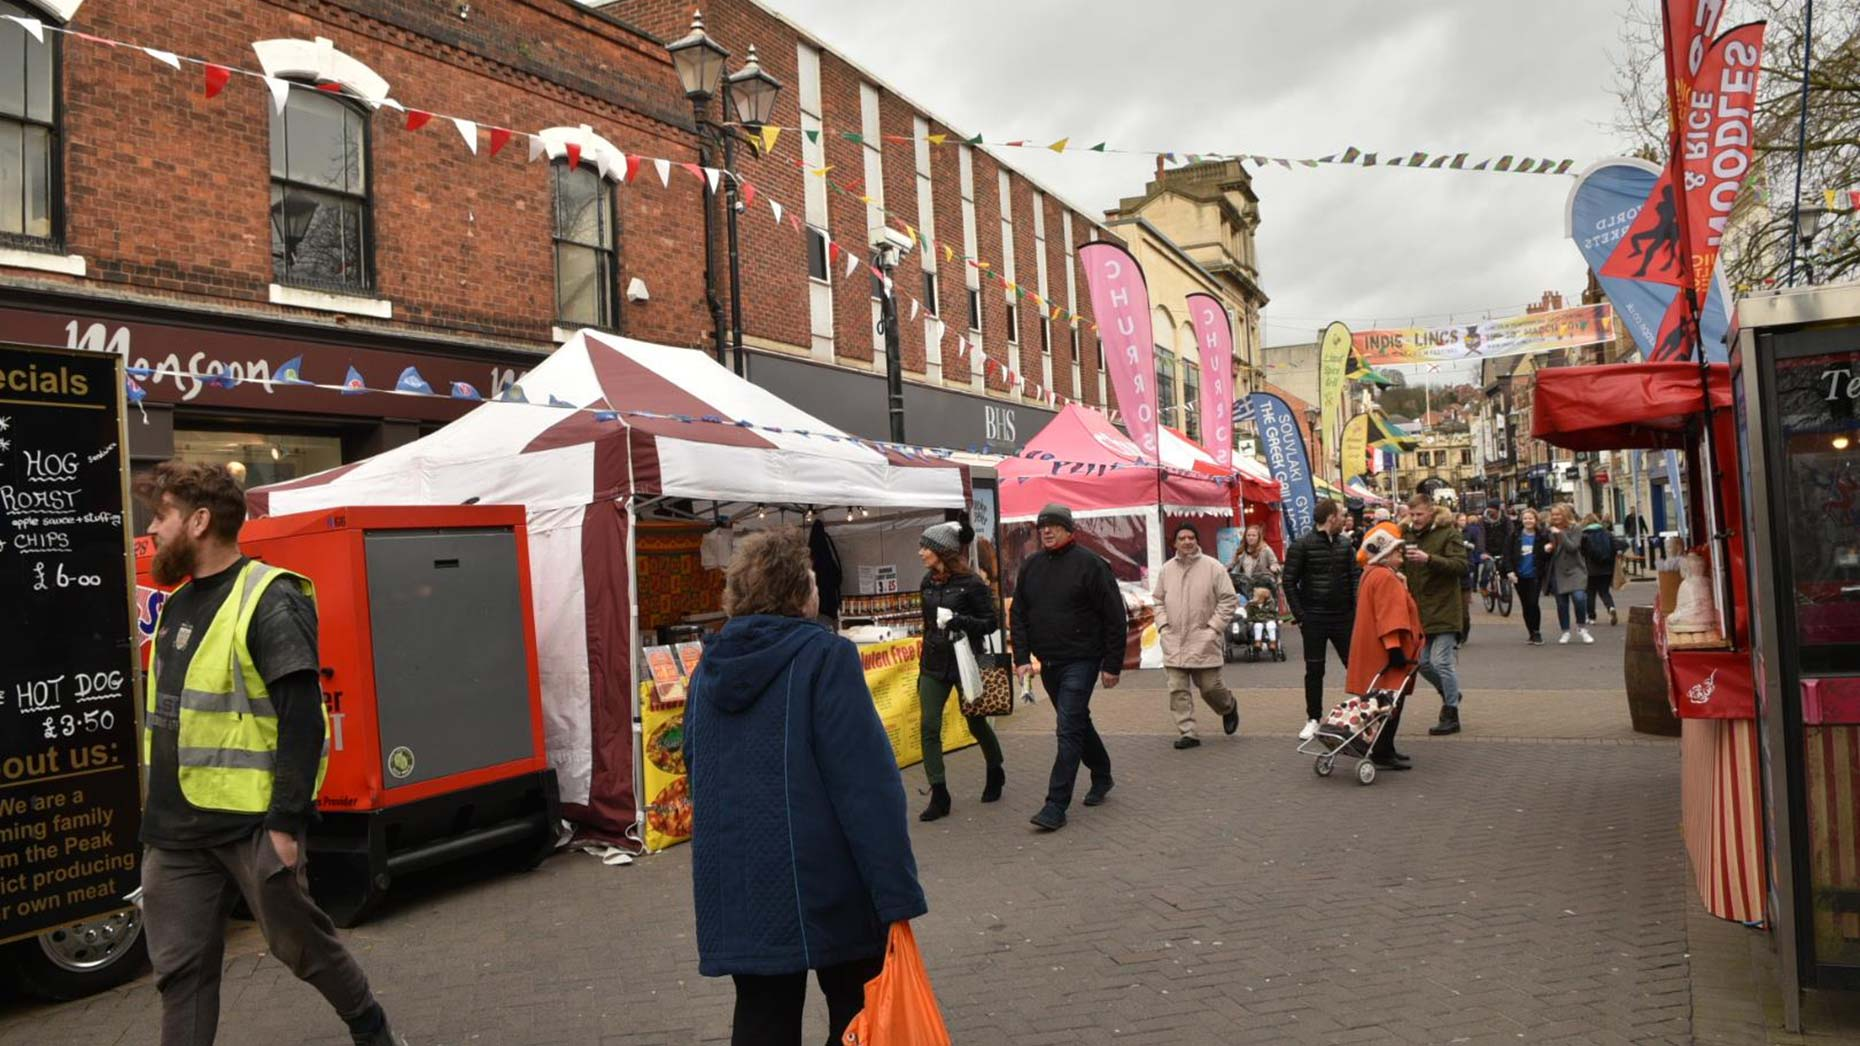 Gallery Lincoln Street Food Festival Opens For The Weekend